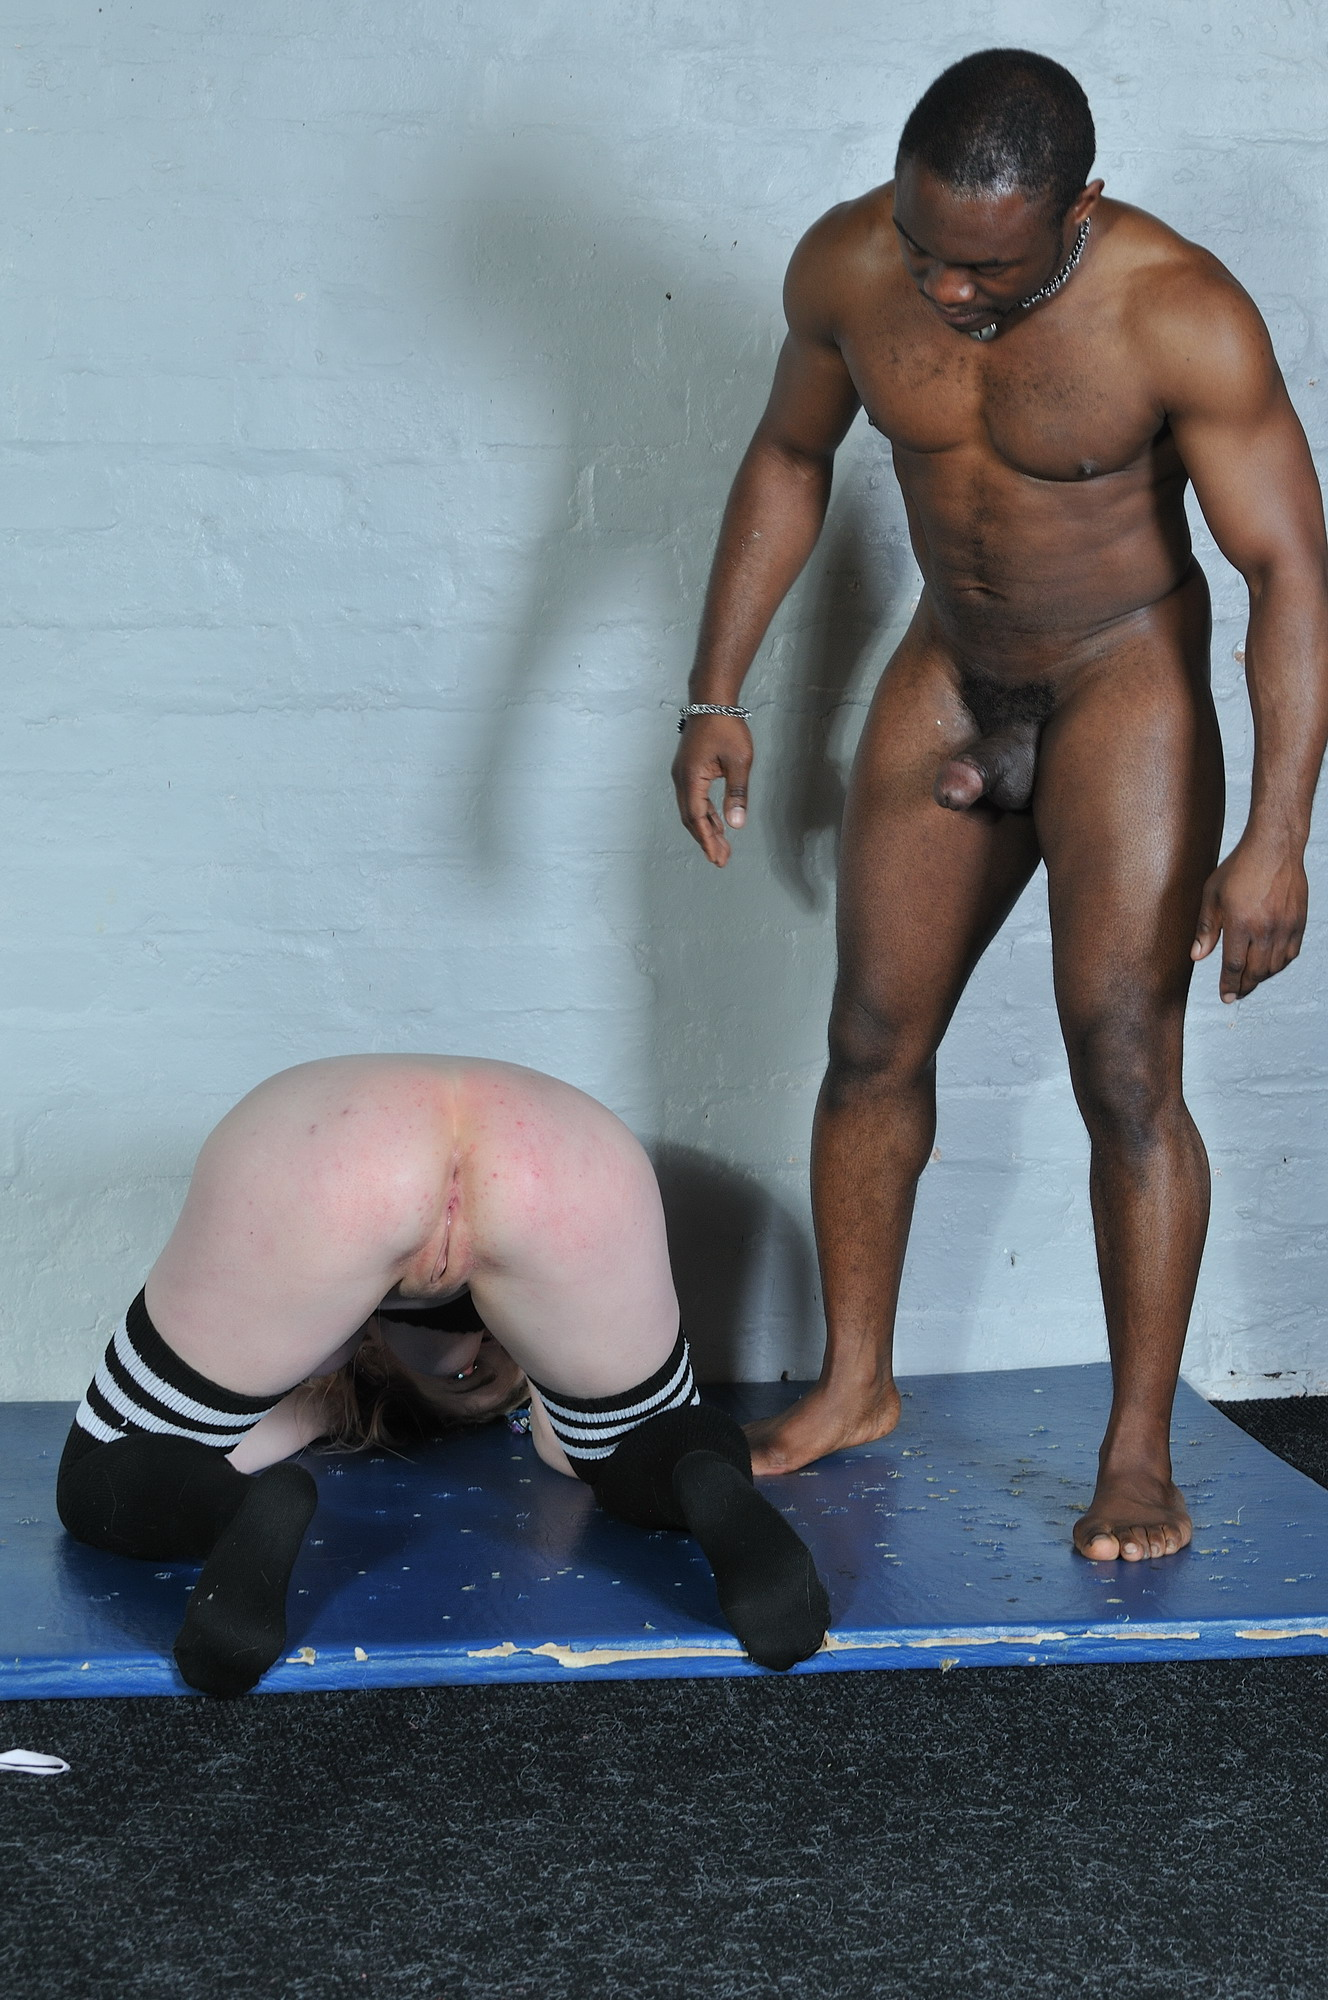 spanking bdsm cuckhold club